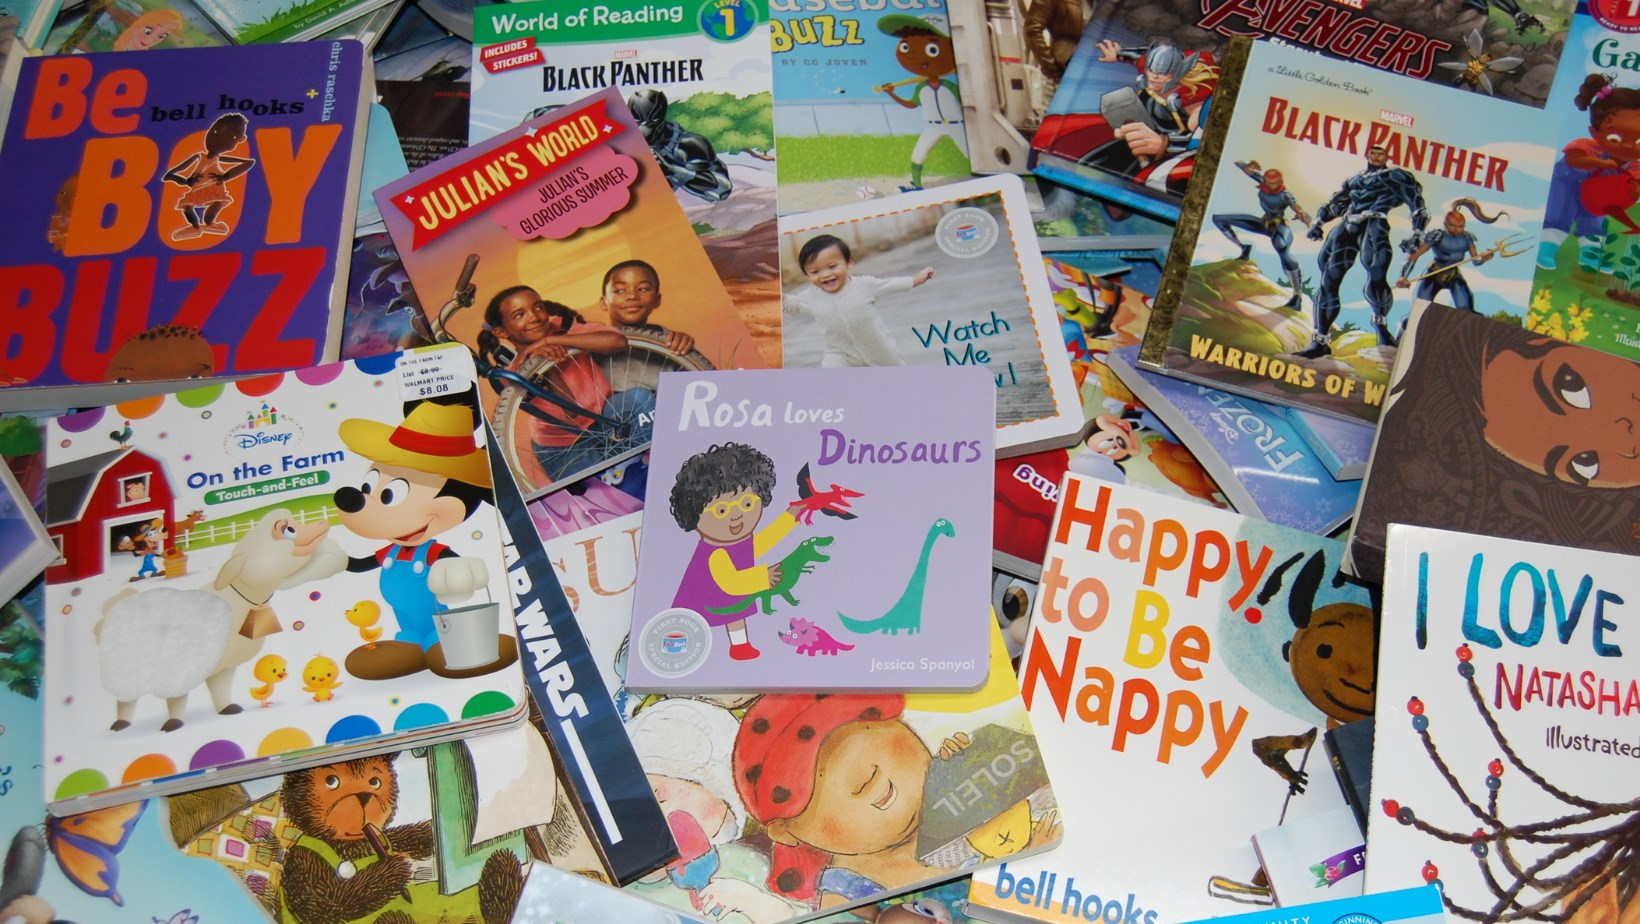 Cleveland Kids' Book Bank donated books